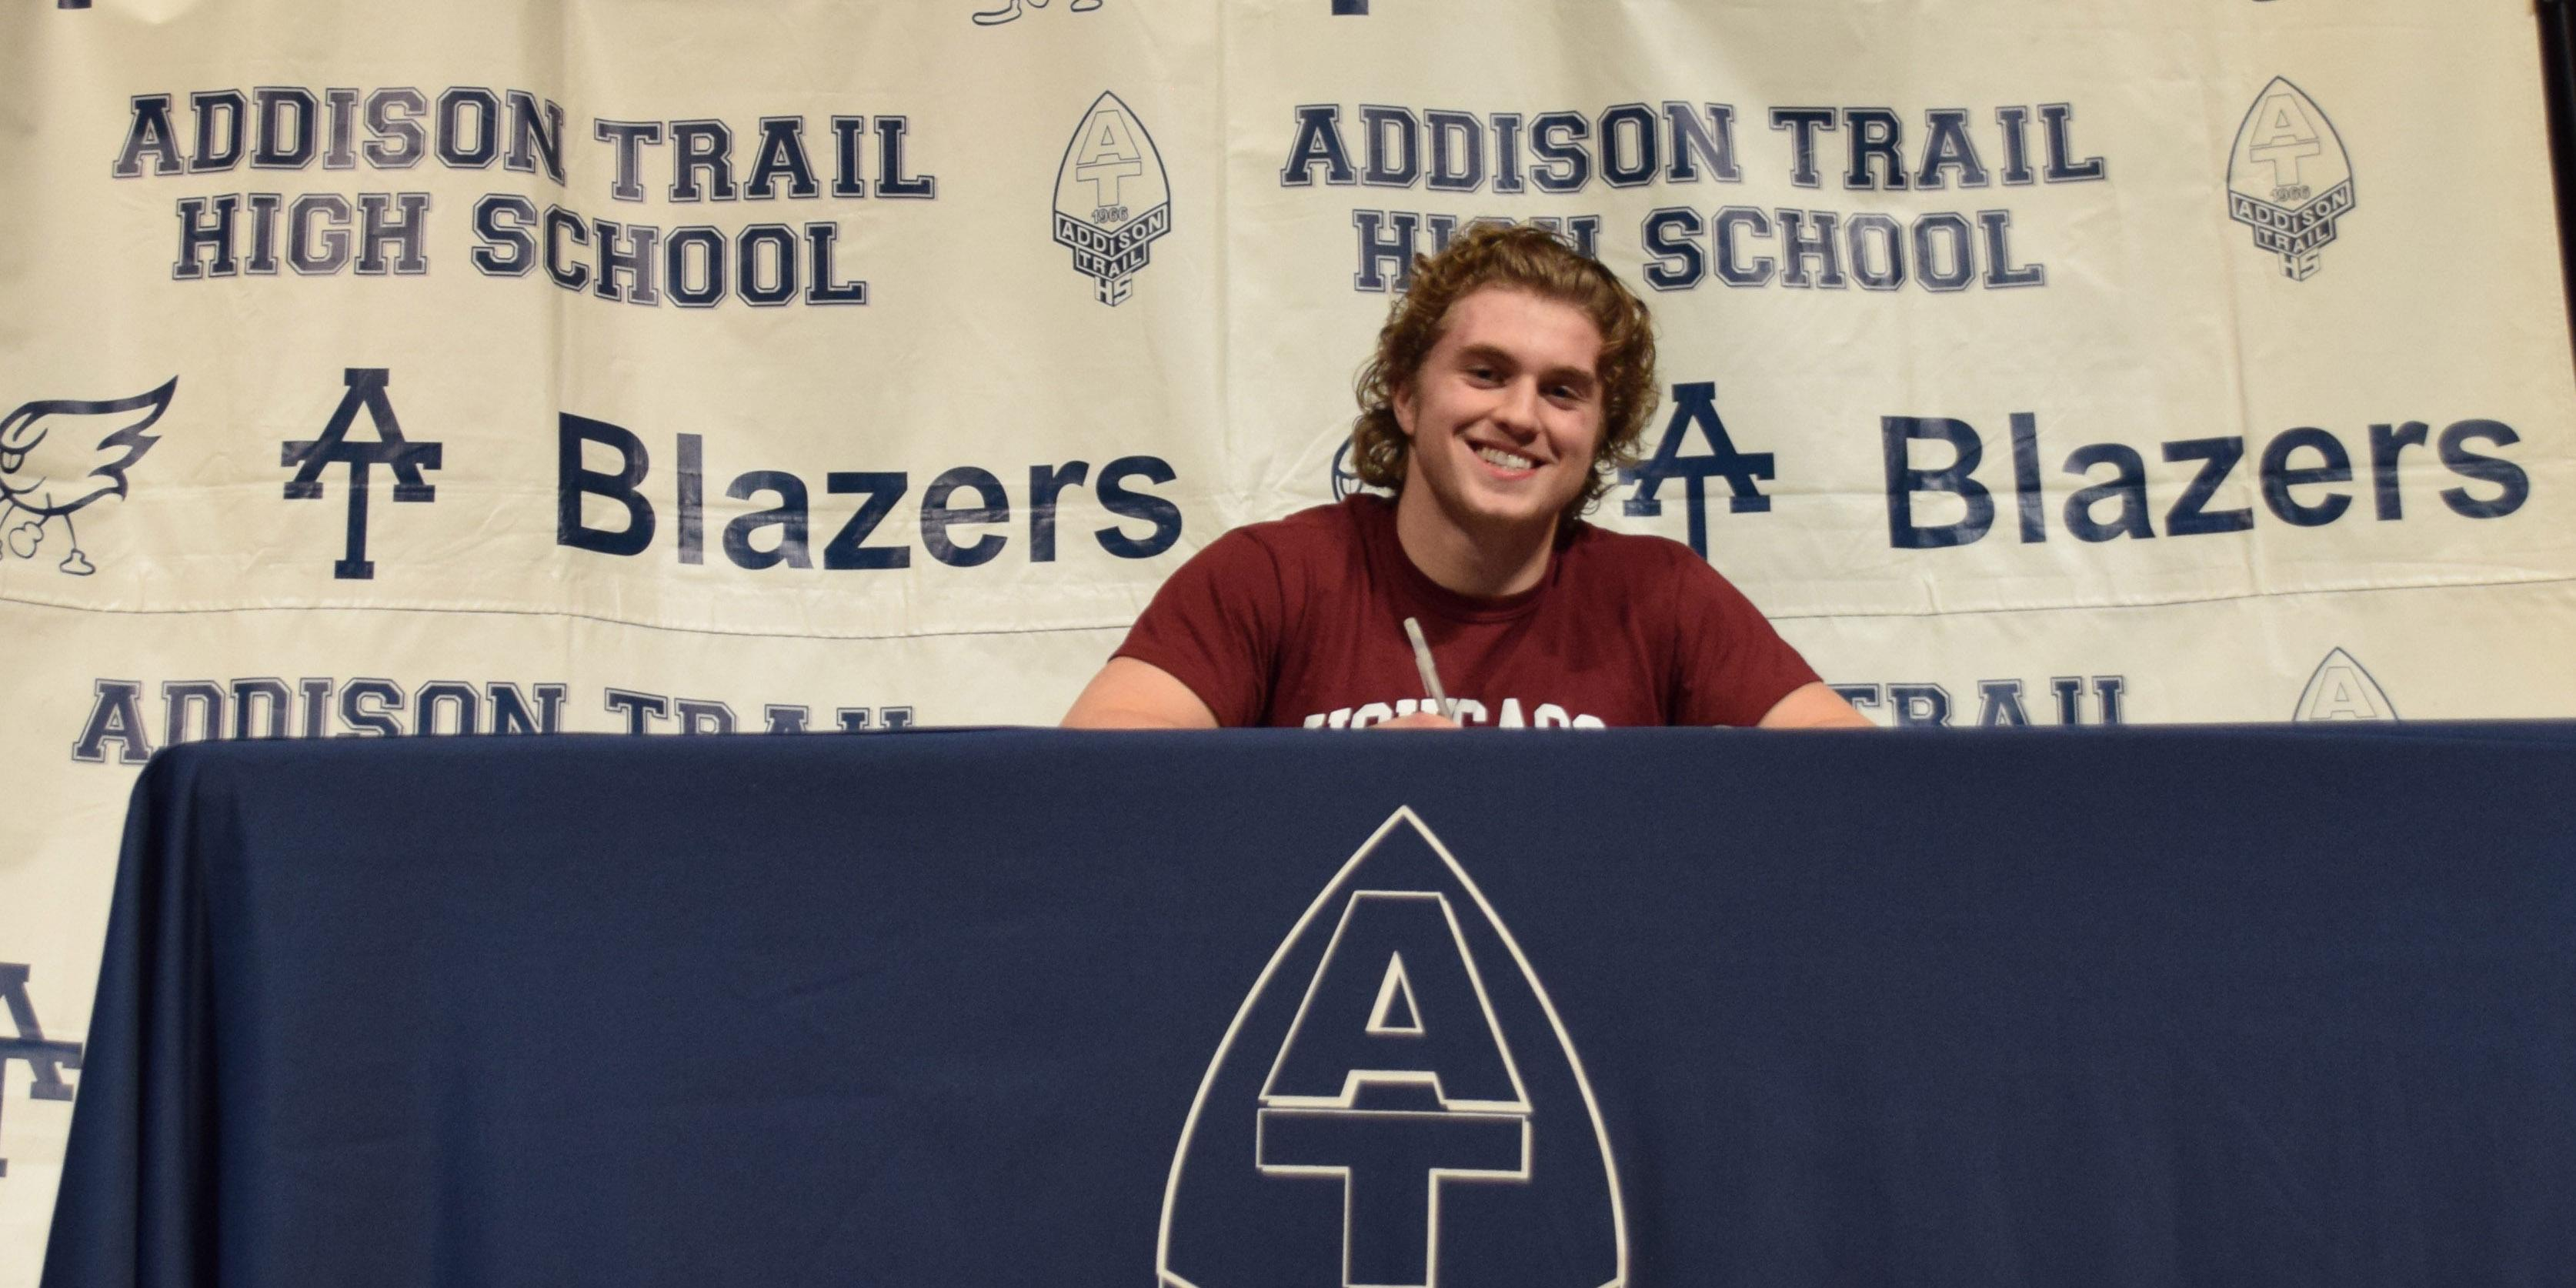 Addison Trail senior signs to play football at The University of Chicago